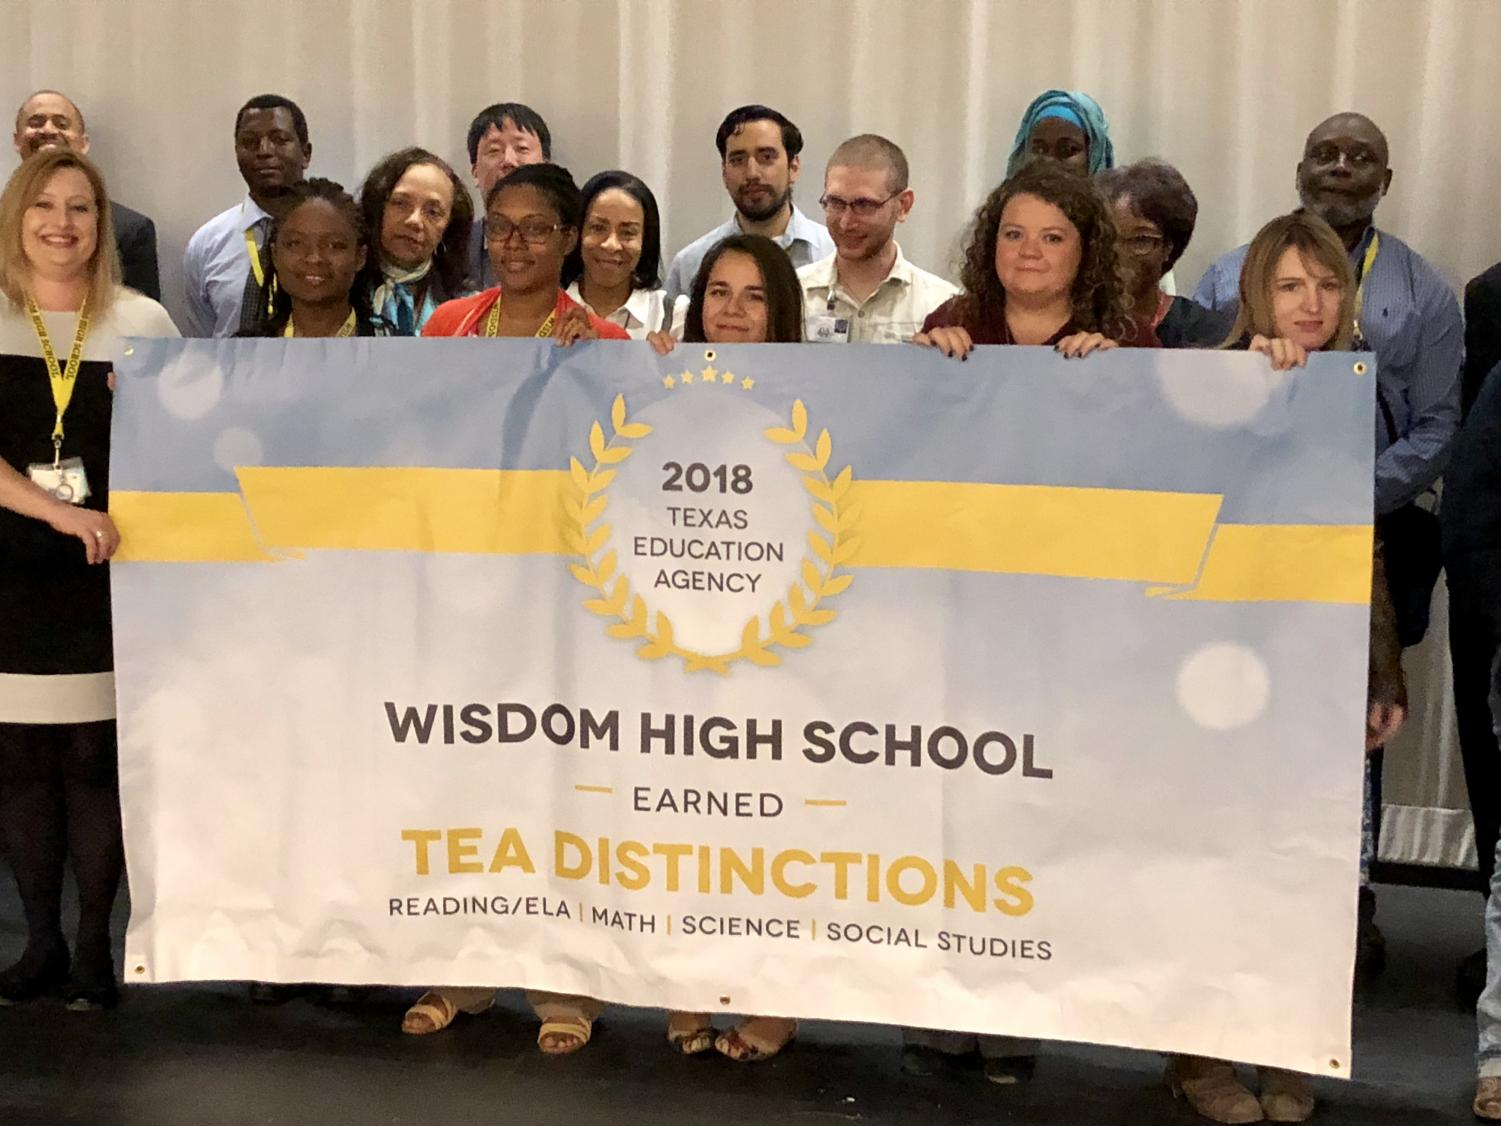 Several Wisdom HS Teachers are shown here holding a banner that features the TEA Distinctions earned by the school for 2018.